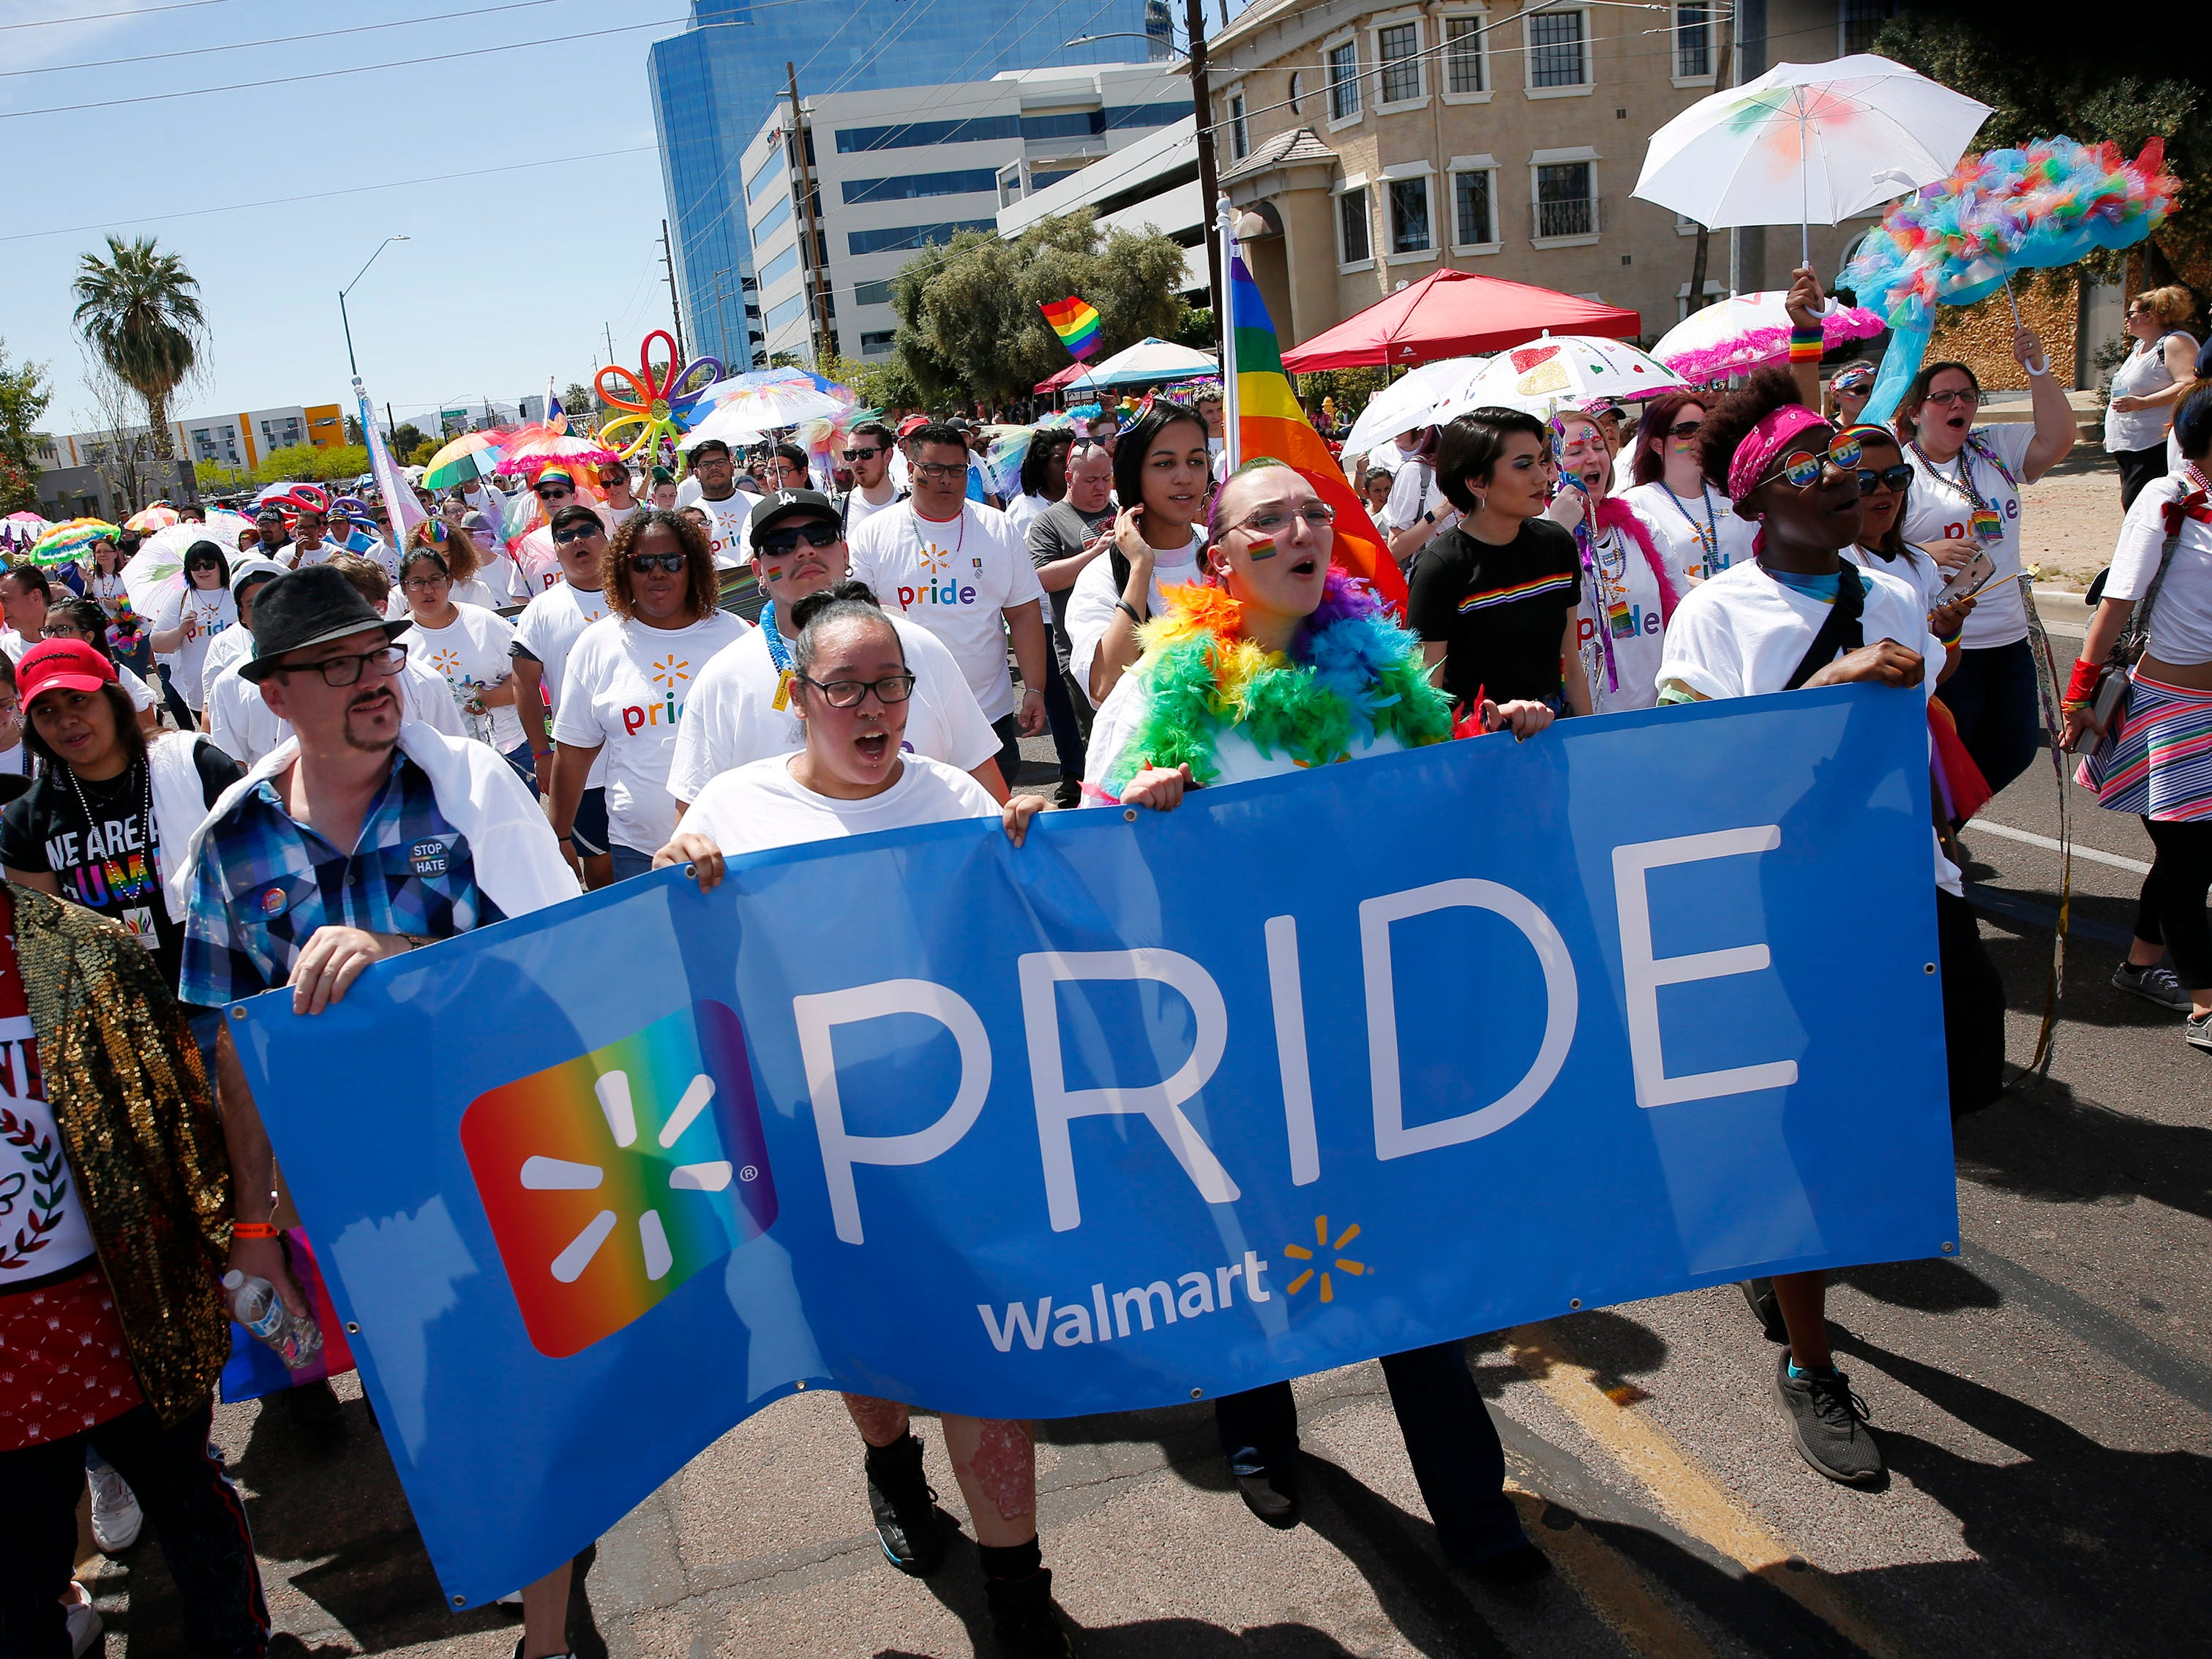 Participants with Walmart march during the Phoenix Pride Parade on April 7, 2019.